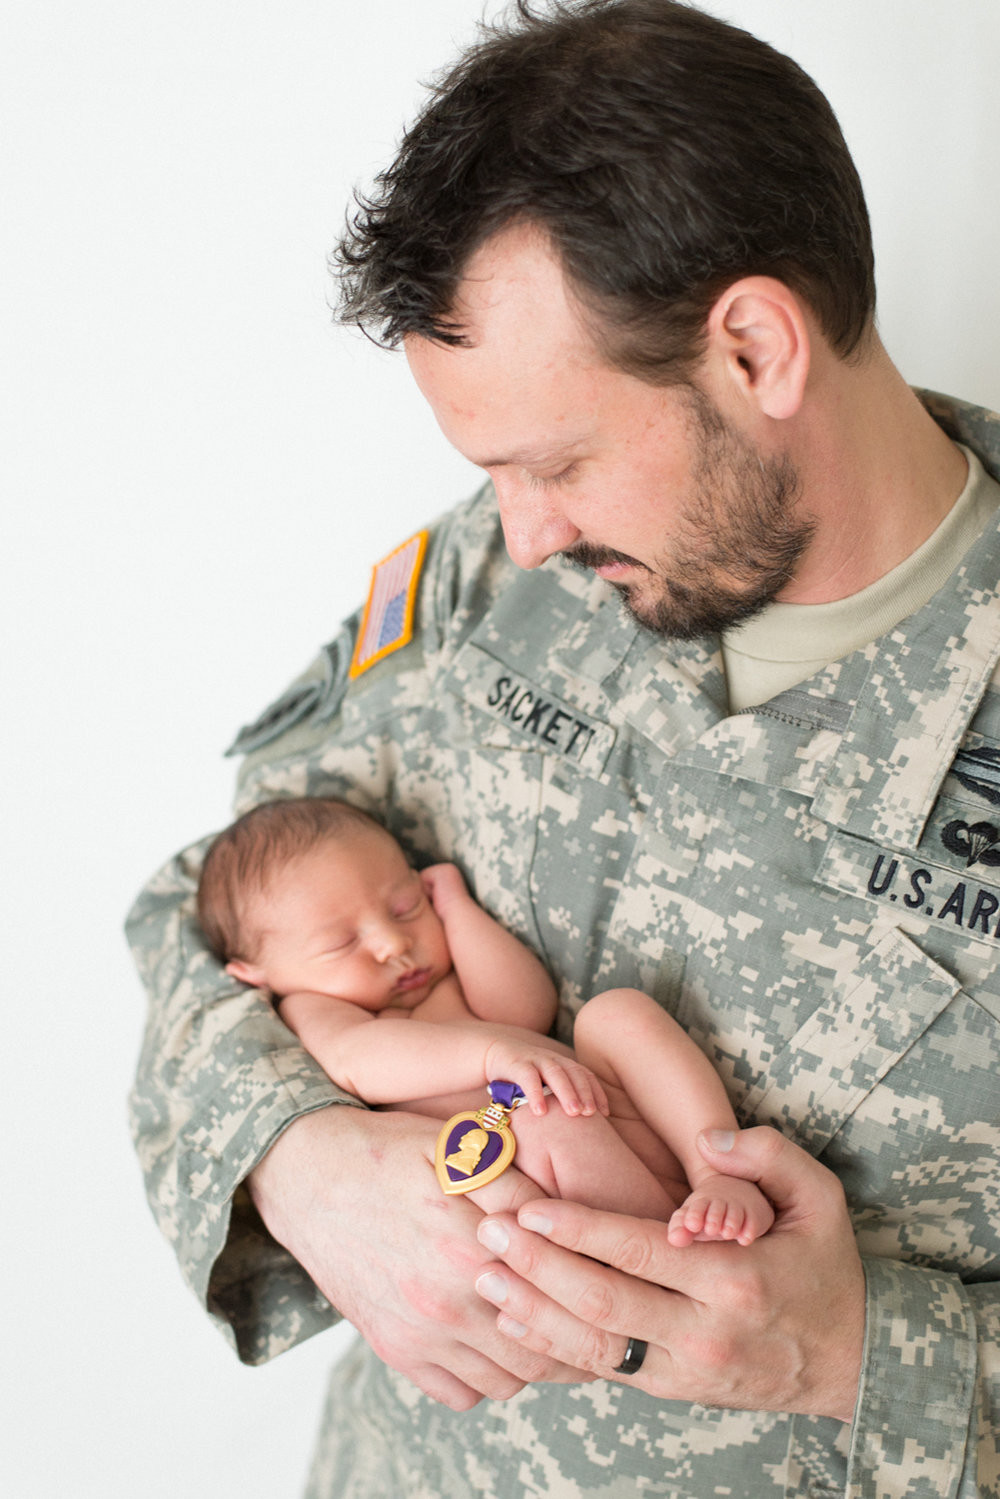 portland-newborn-baby-photographer-special-forces-purple-heart-veteran-army-shelley-marie-photo-29